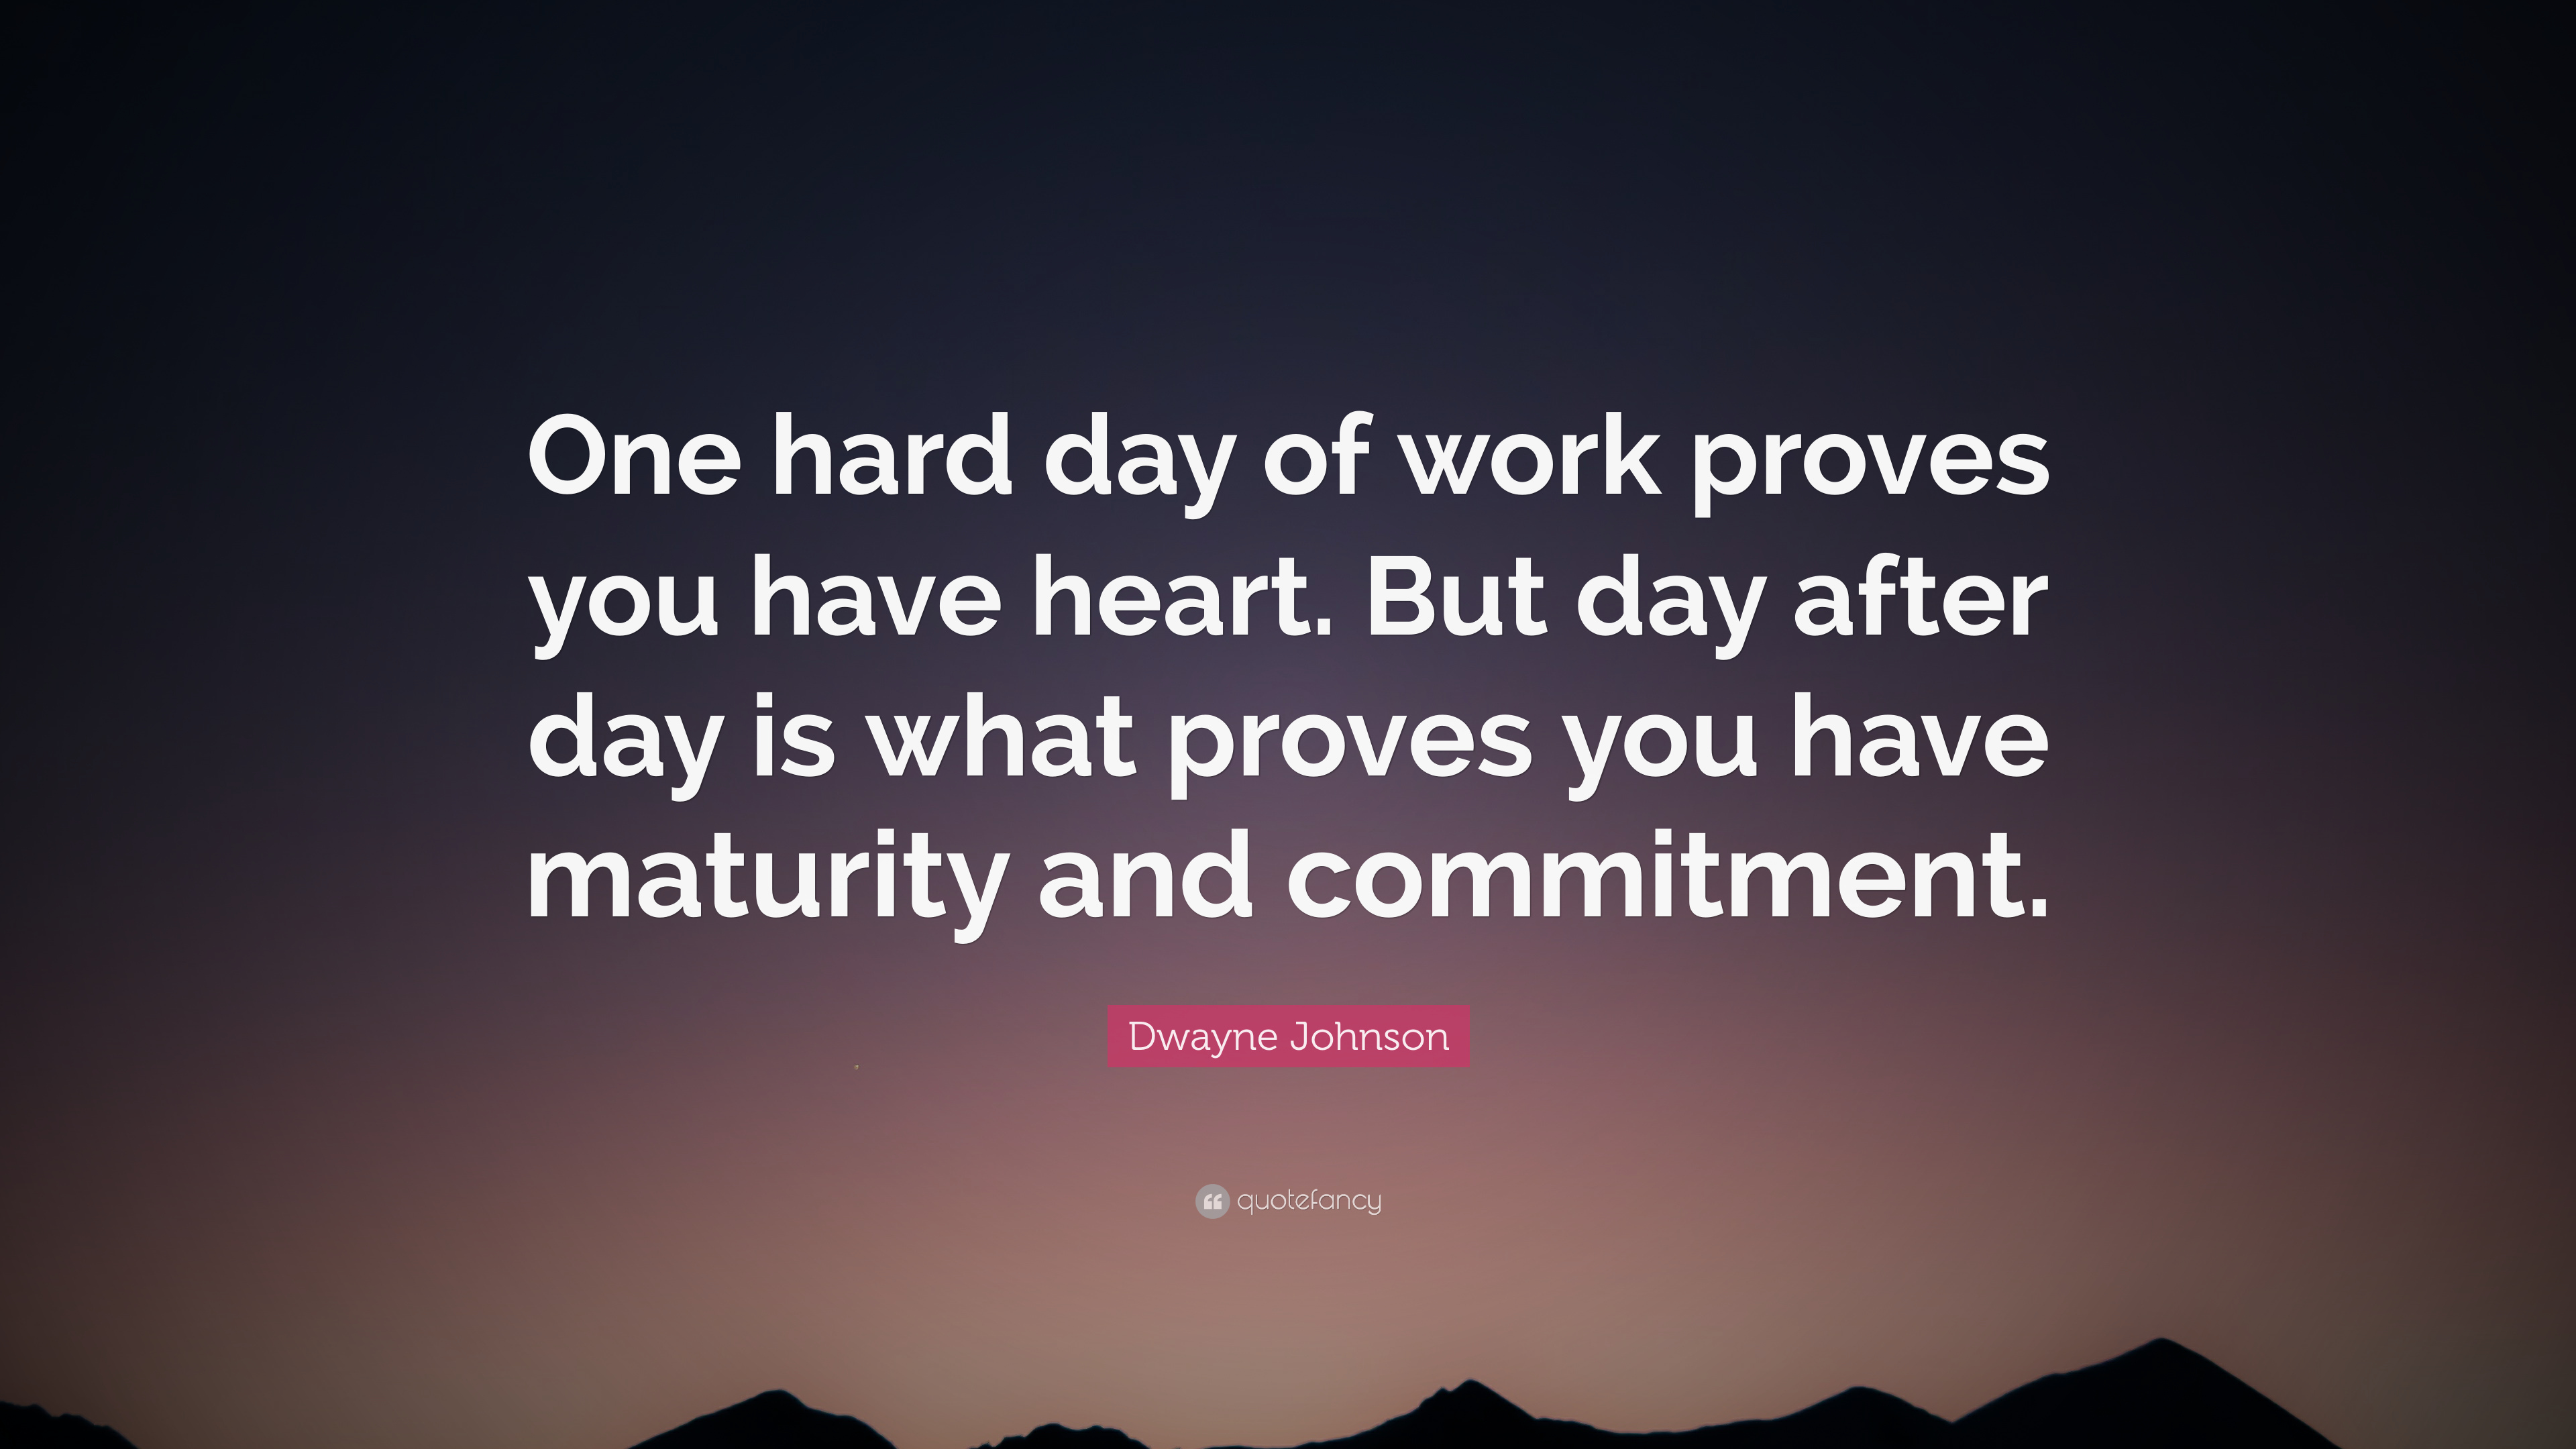 """dwayne johnson quote """"one hard day of work proves you have heart"""